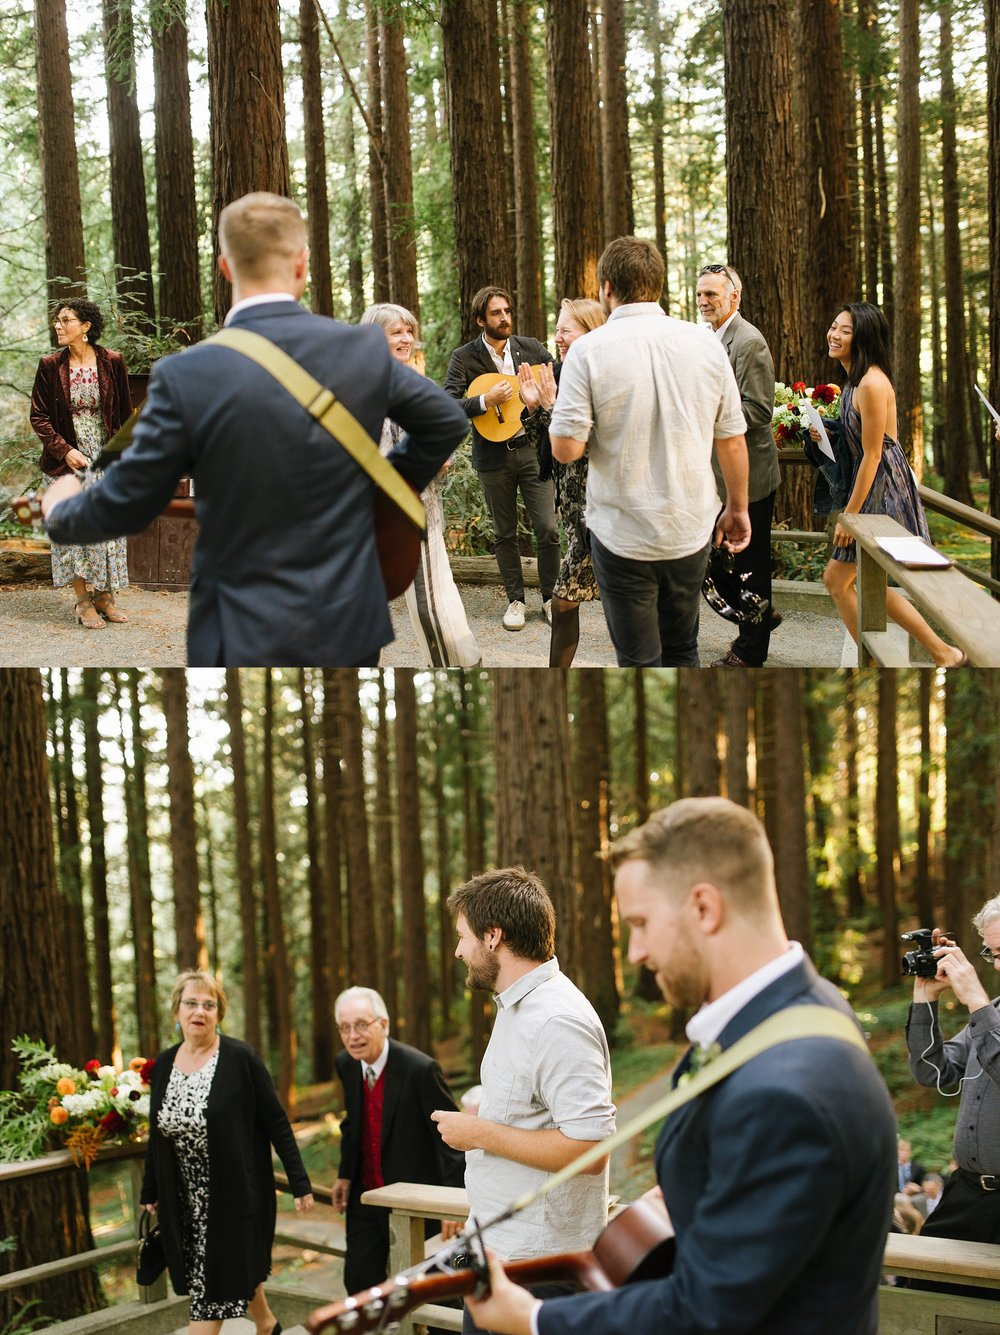 noahhannah_redwoods_botanical_wedding_berkeley_cdp_0035.jpg